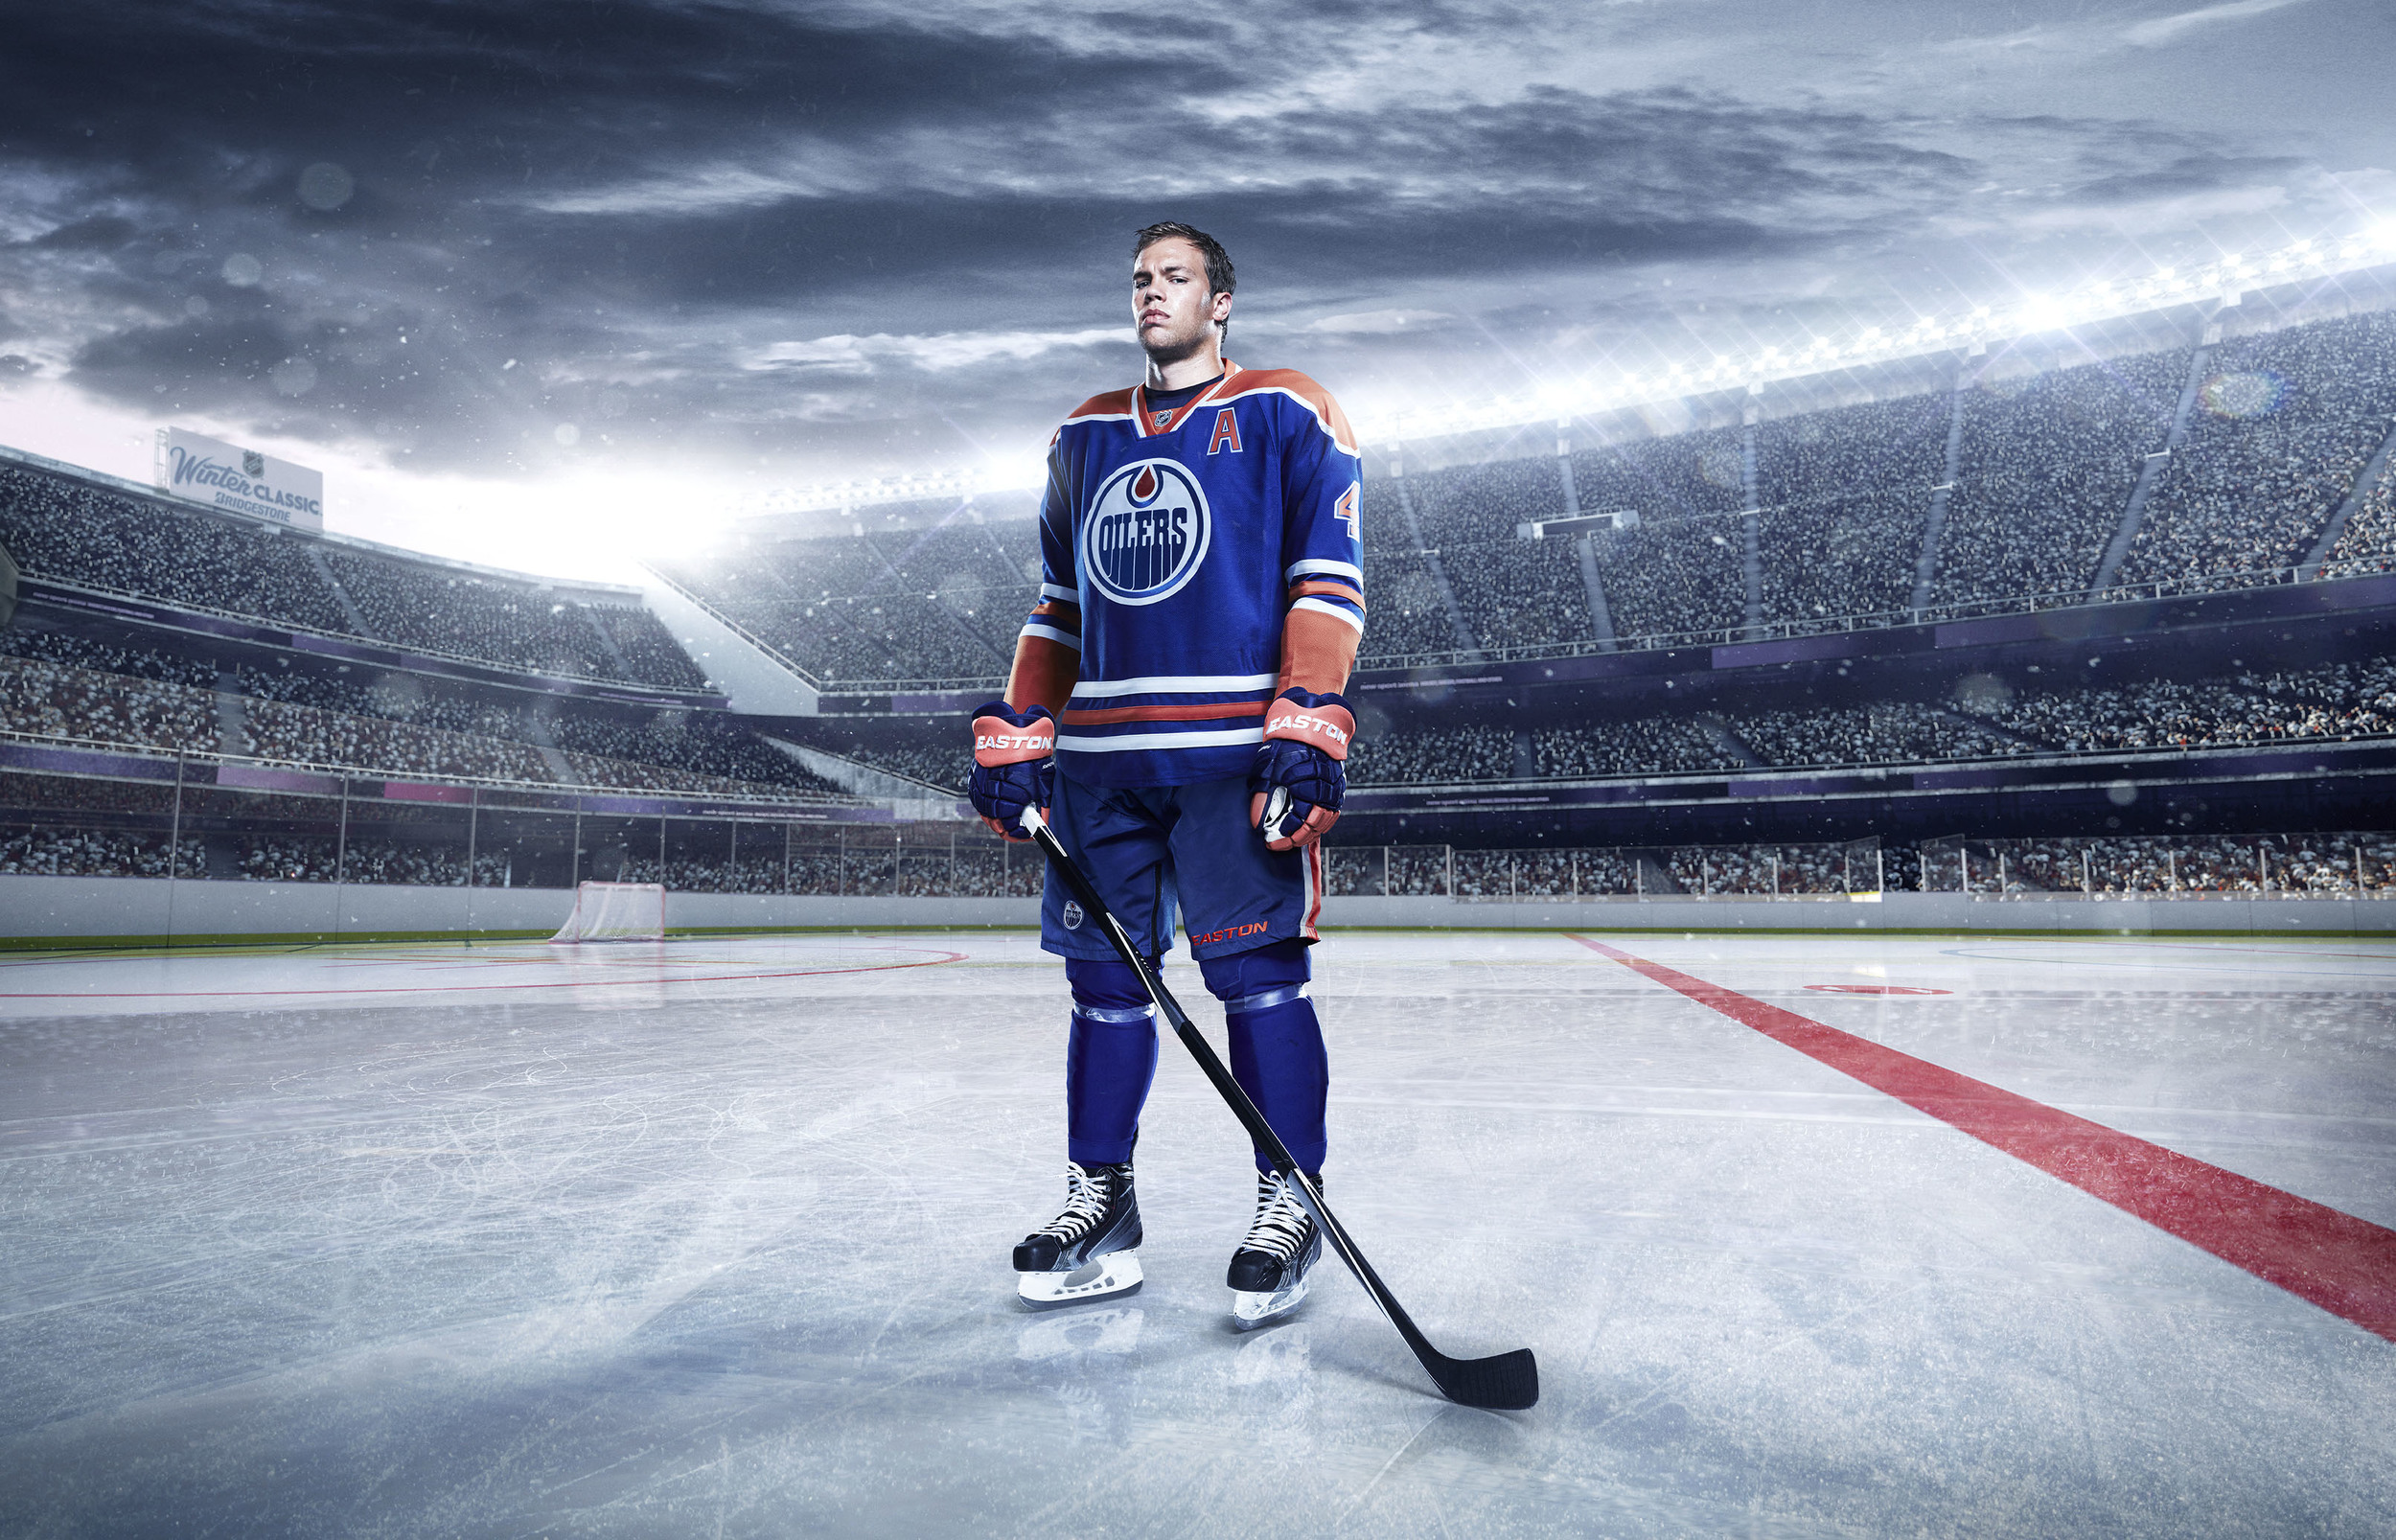 Taylor Hall - Oilers  Photographer • Aaron Cobb  Compositing and CGI • Brad Pickard